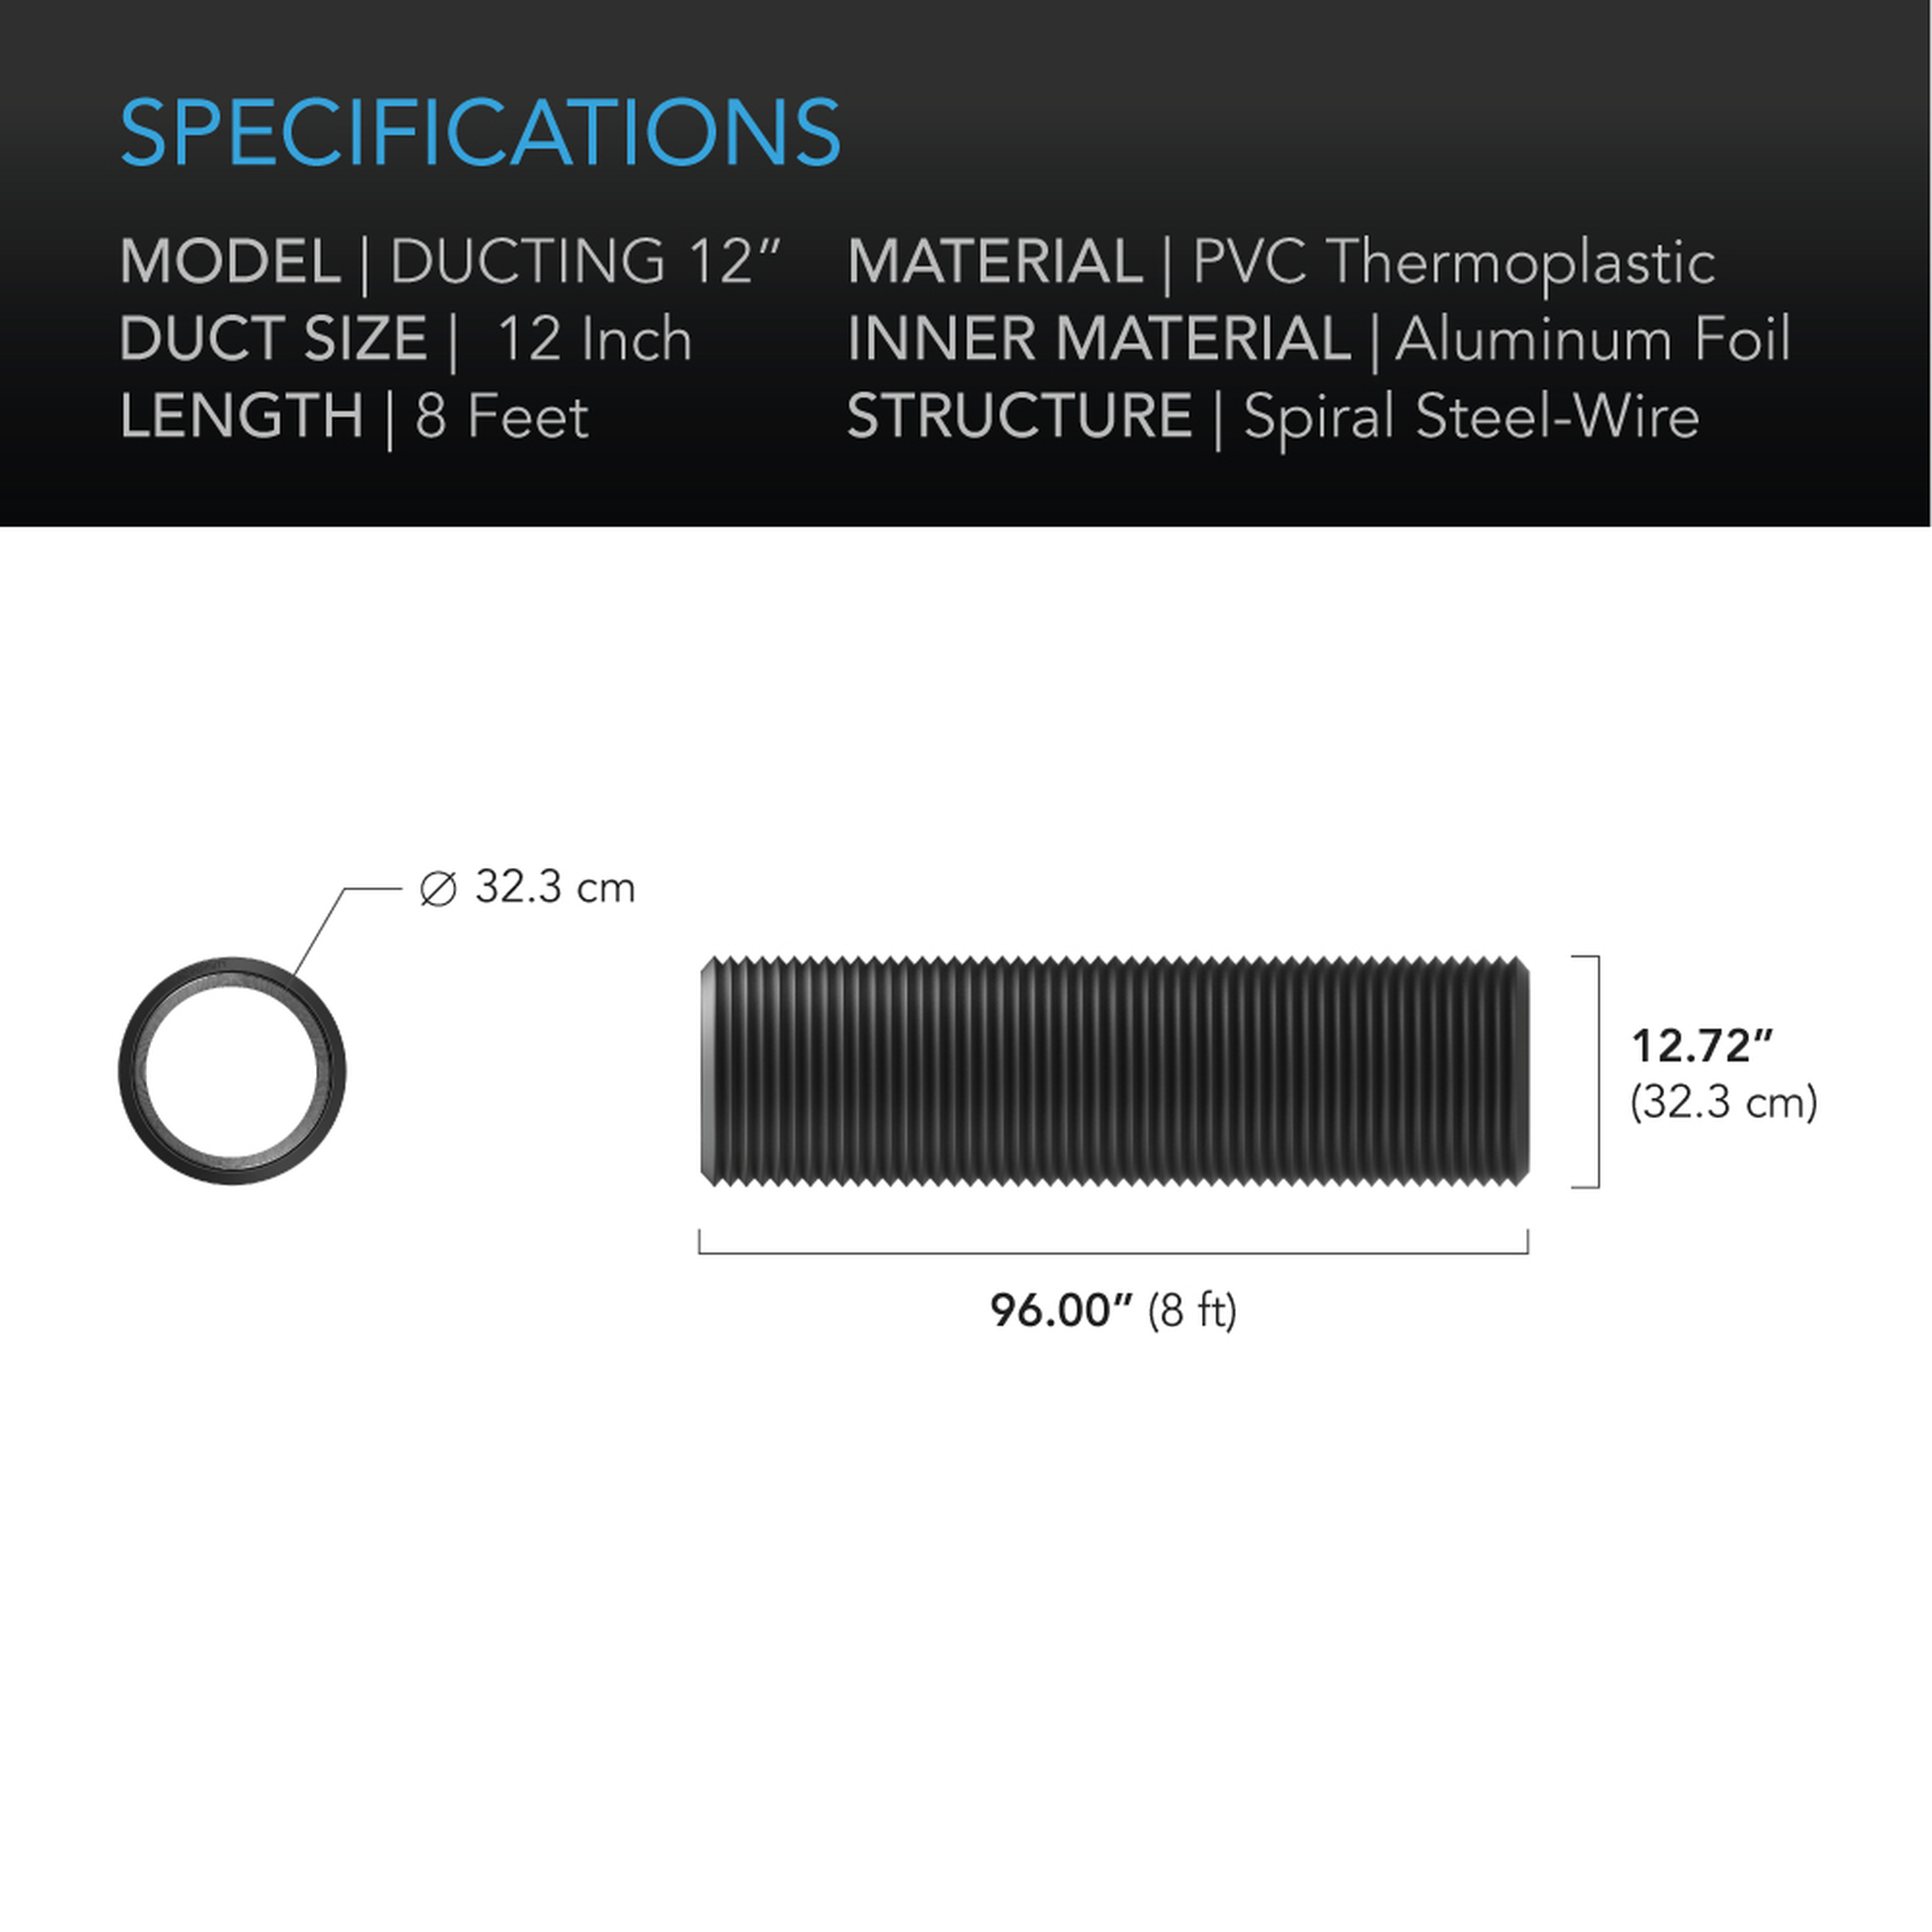 Duct tube 12 8' Specifications